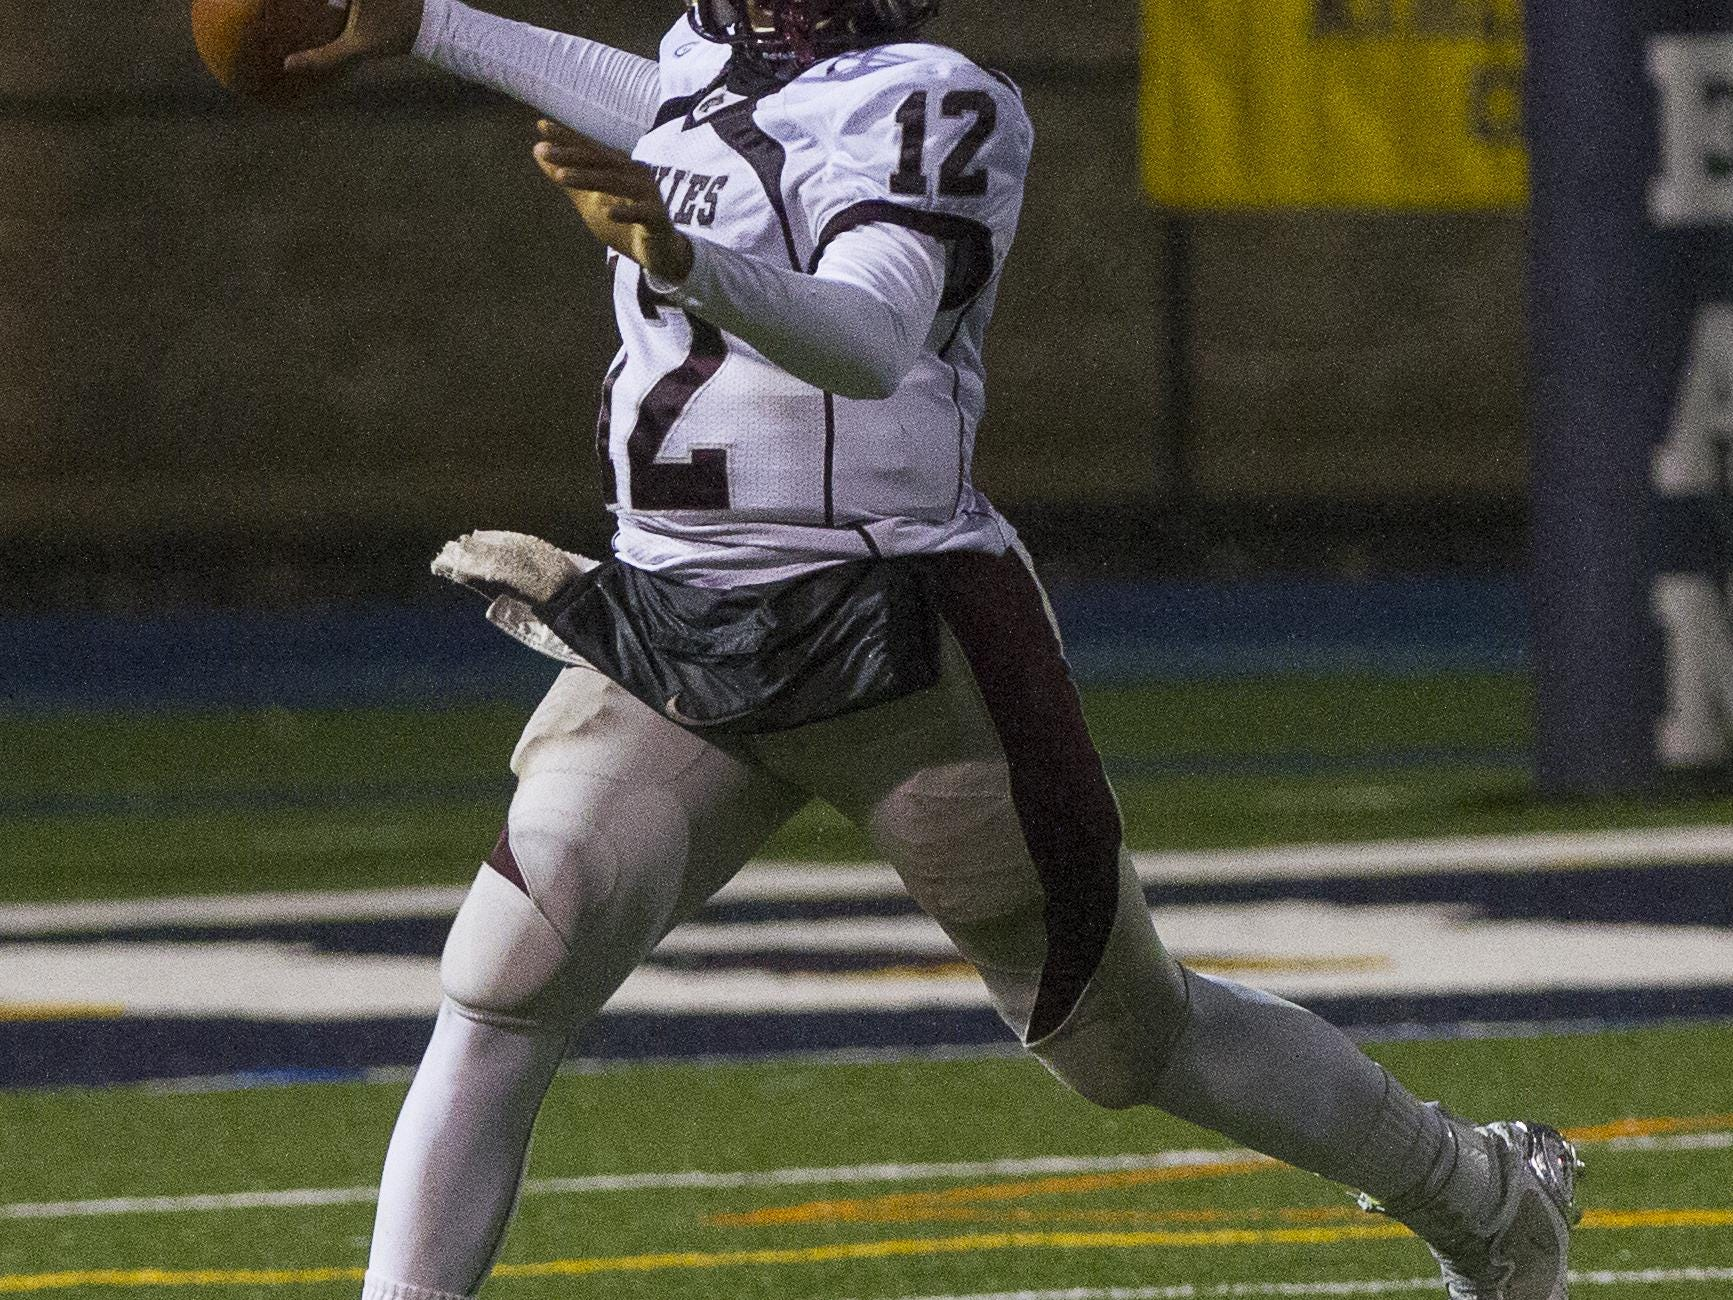 Matawan's George Pearson throws against Carteret in the Central Group III football championship at Kean University on Dec. 5, 2014.